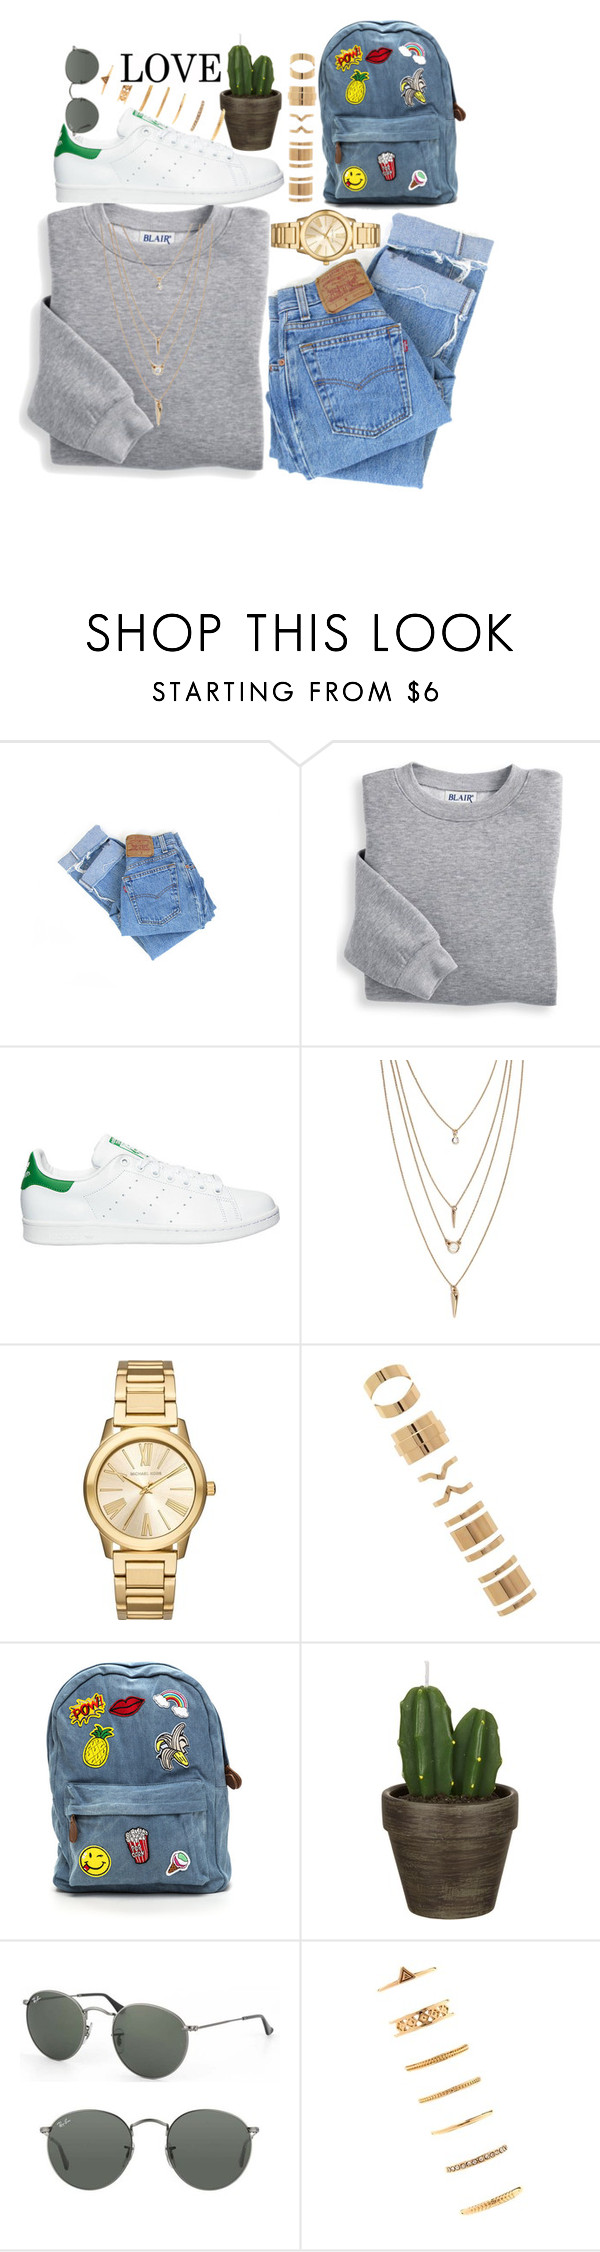 """""""Untitled #69"""" by adibaron1122 ❤ liked on Polyvore featuring Levi's, Blair, adidas, Forever 21, Michael Kors, John Lewis and Ray-Ban"""